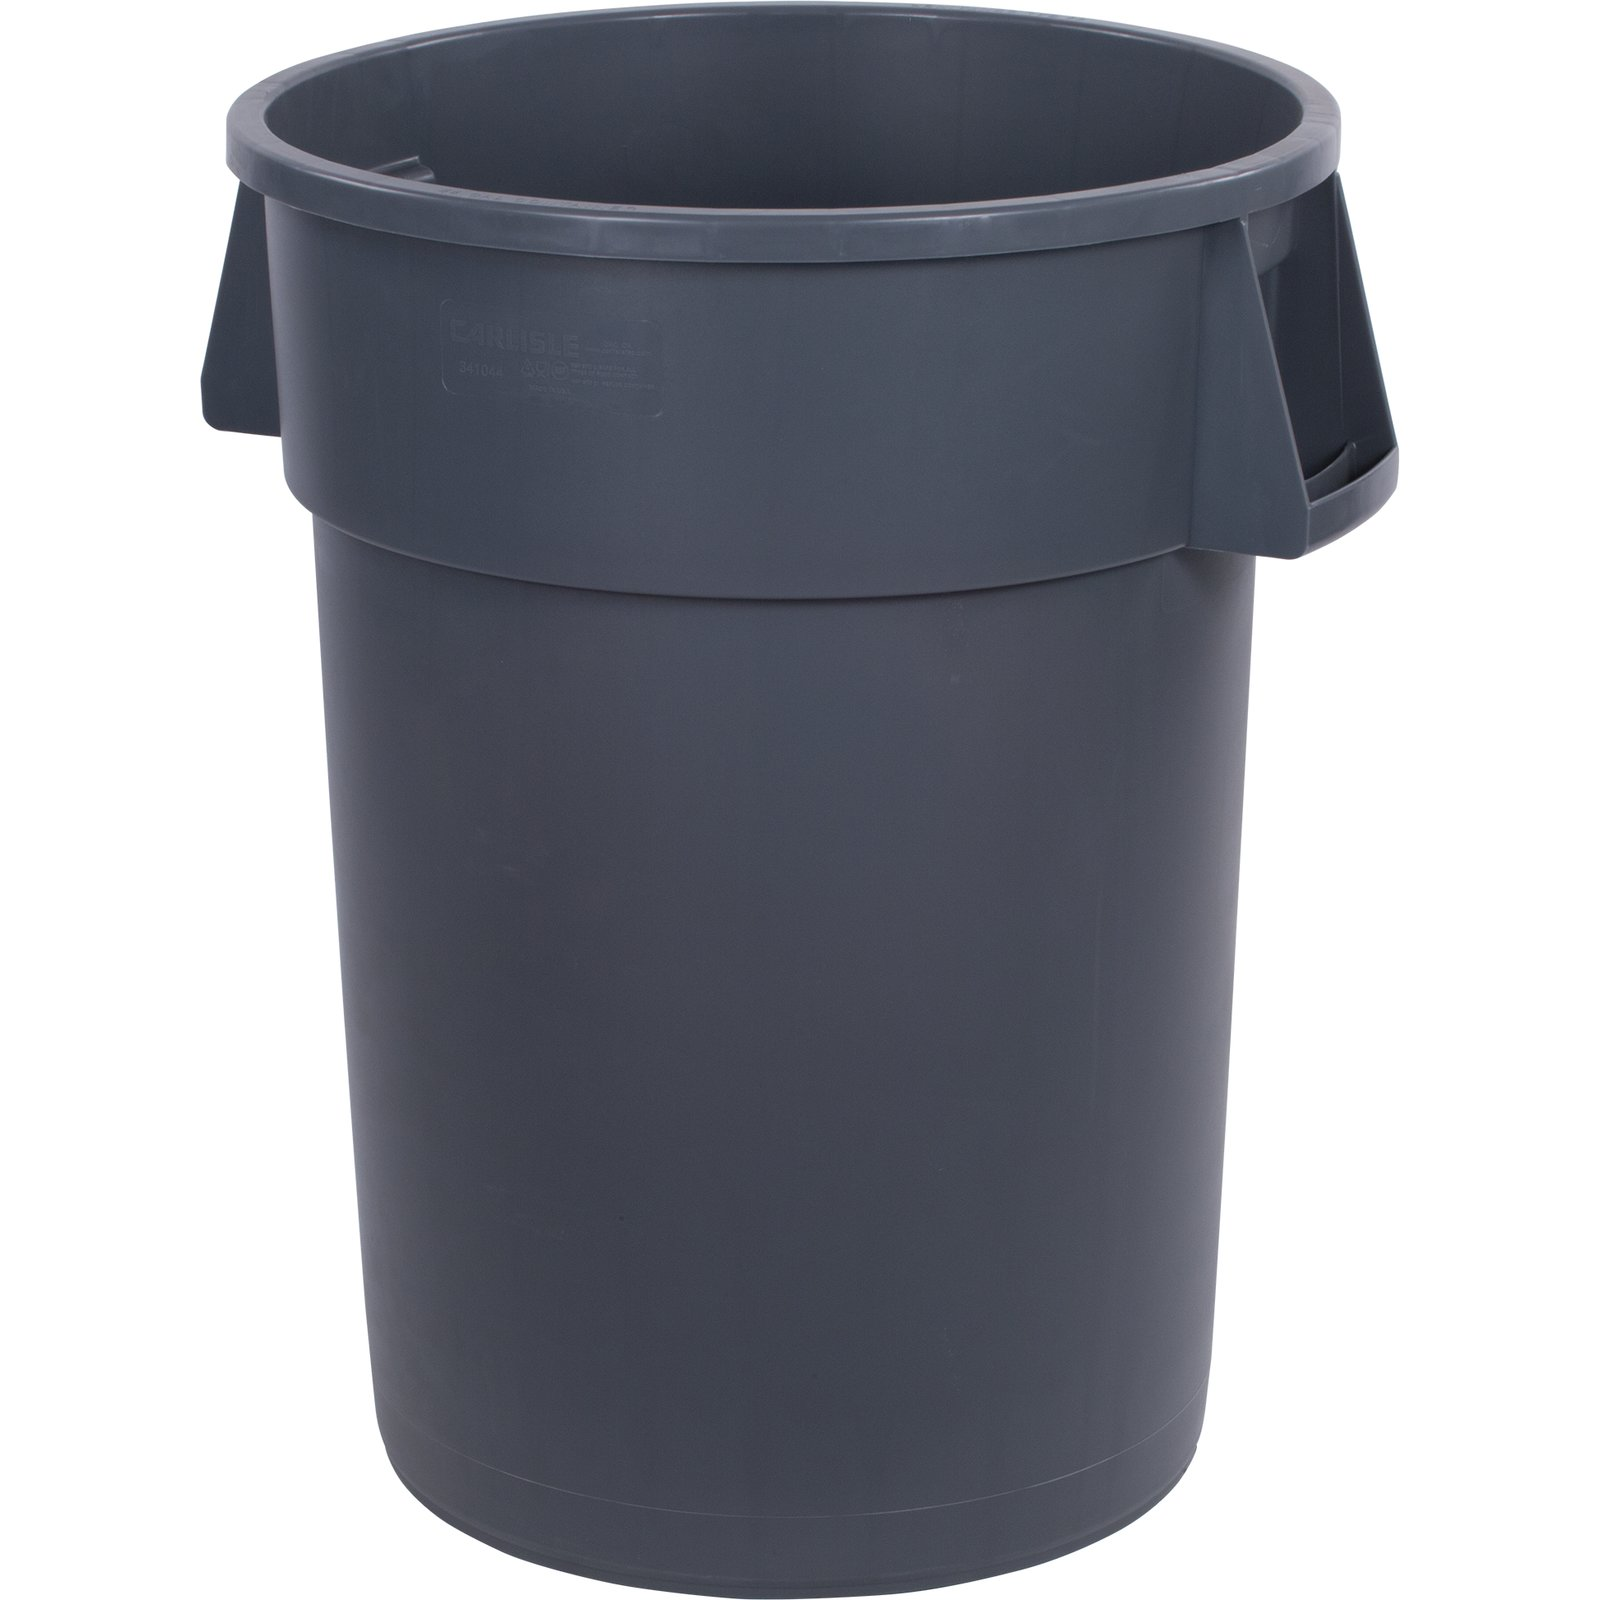 TRASH CAN 44 GALLON GREY ROUND